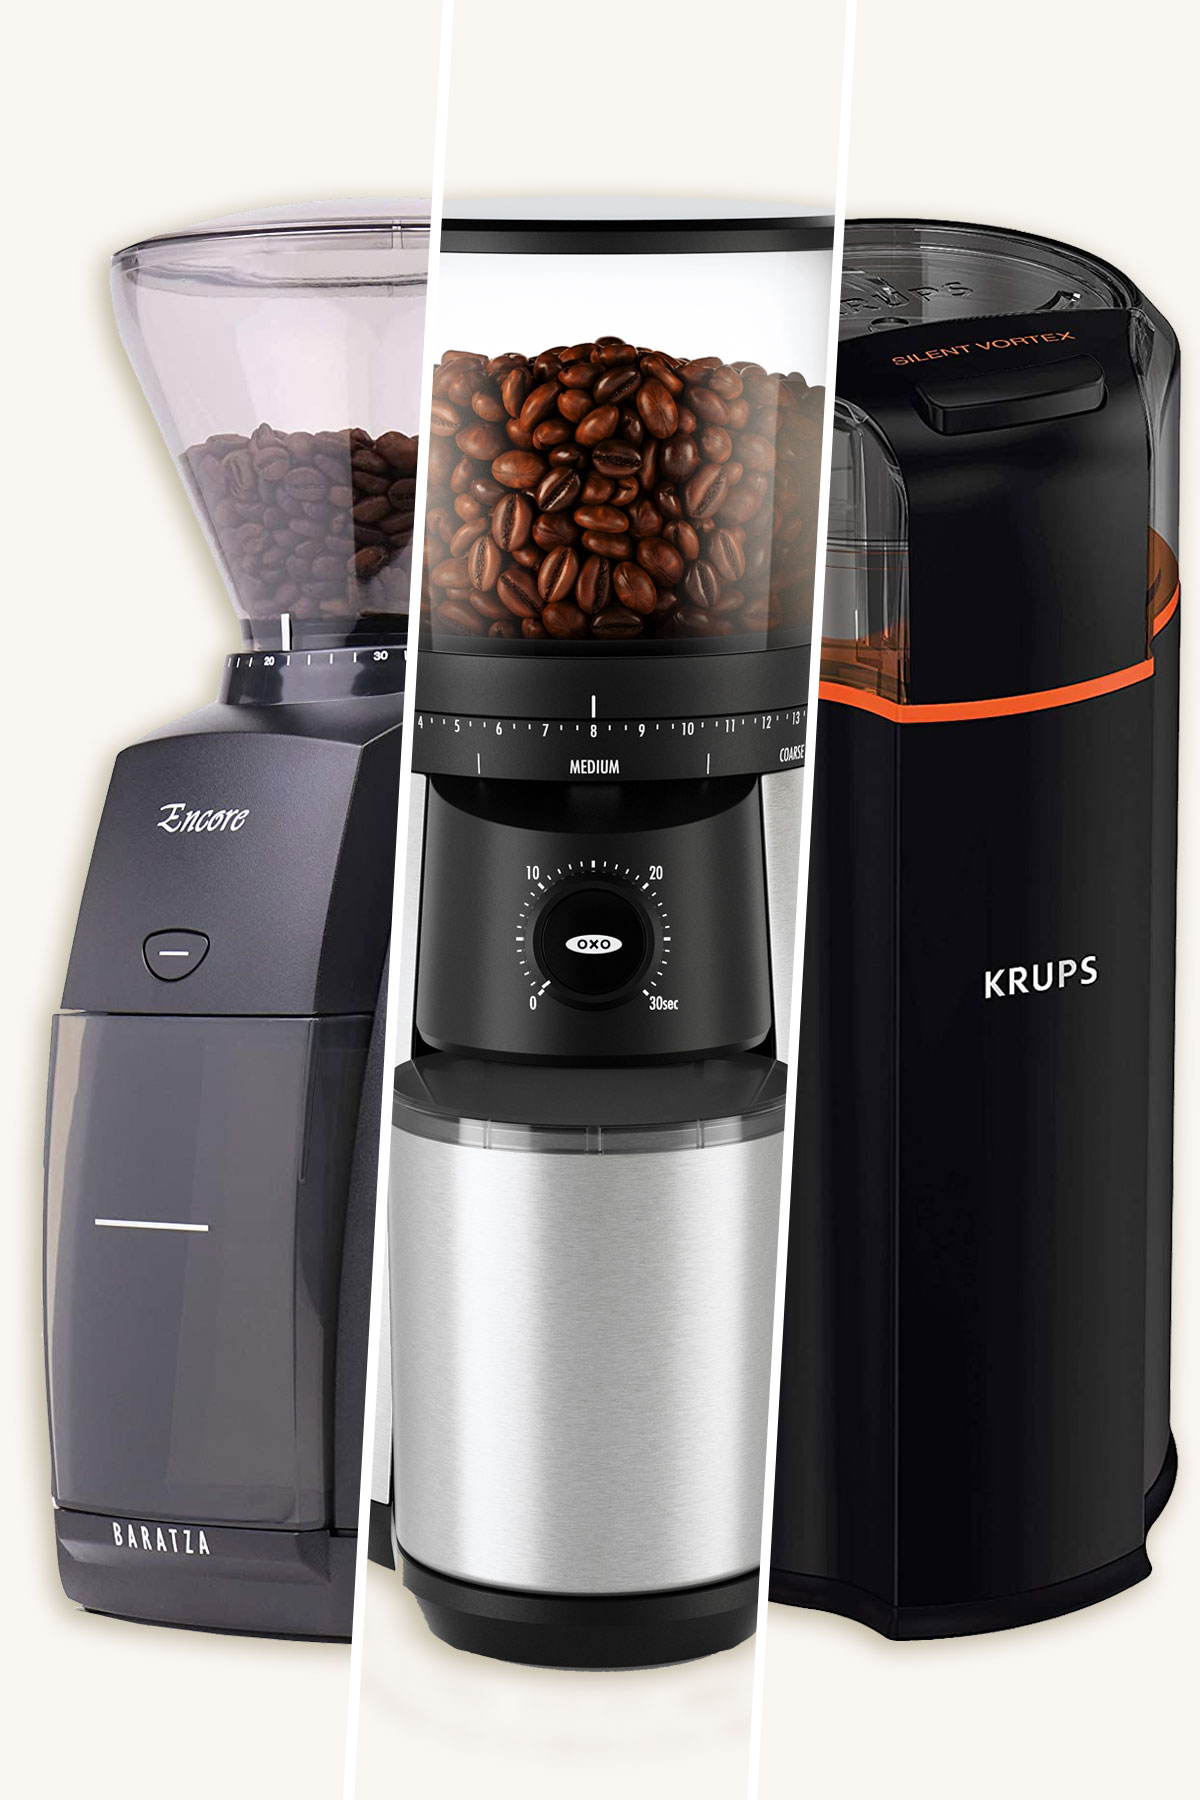 Three different coffee grinders.